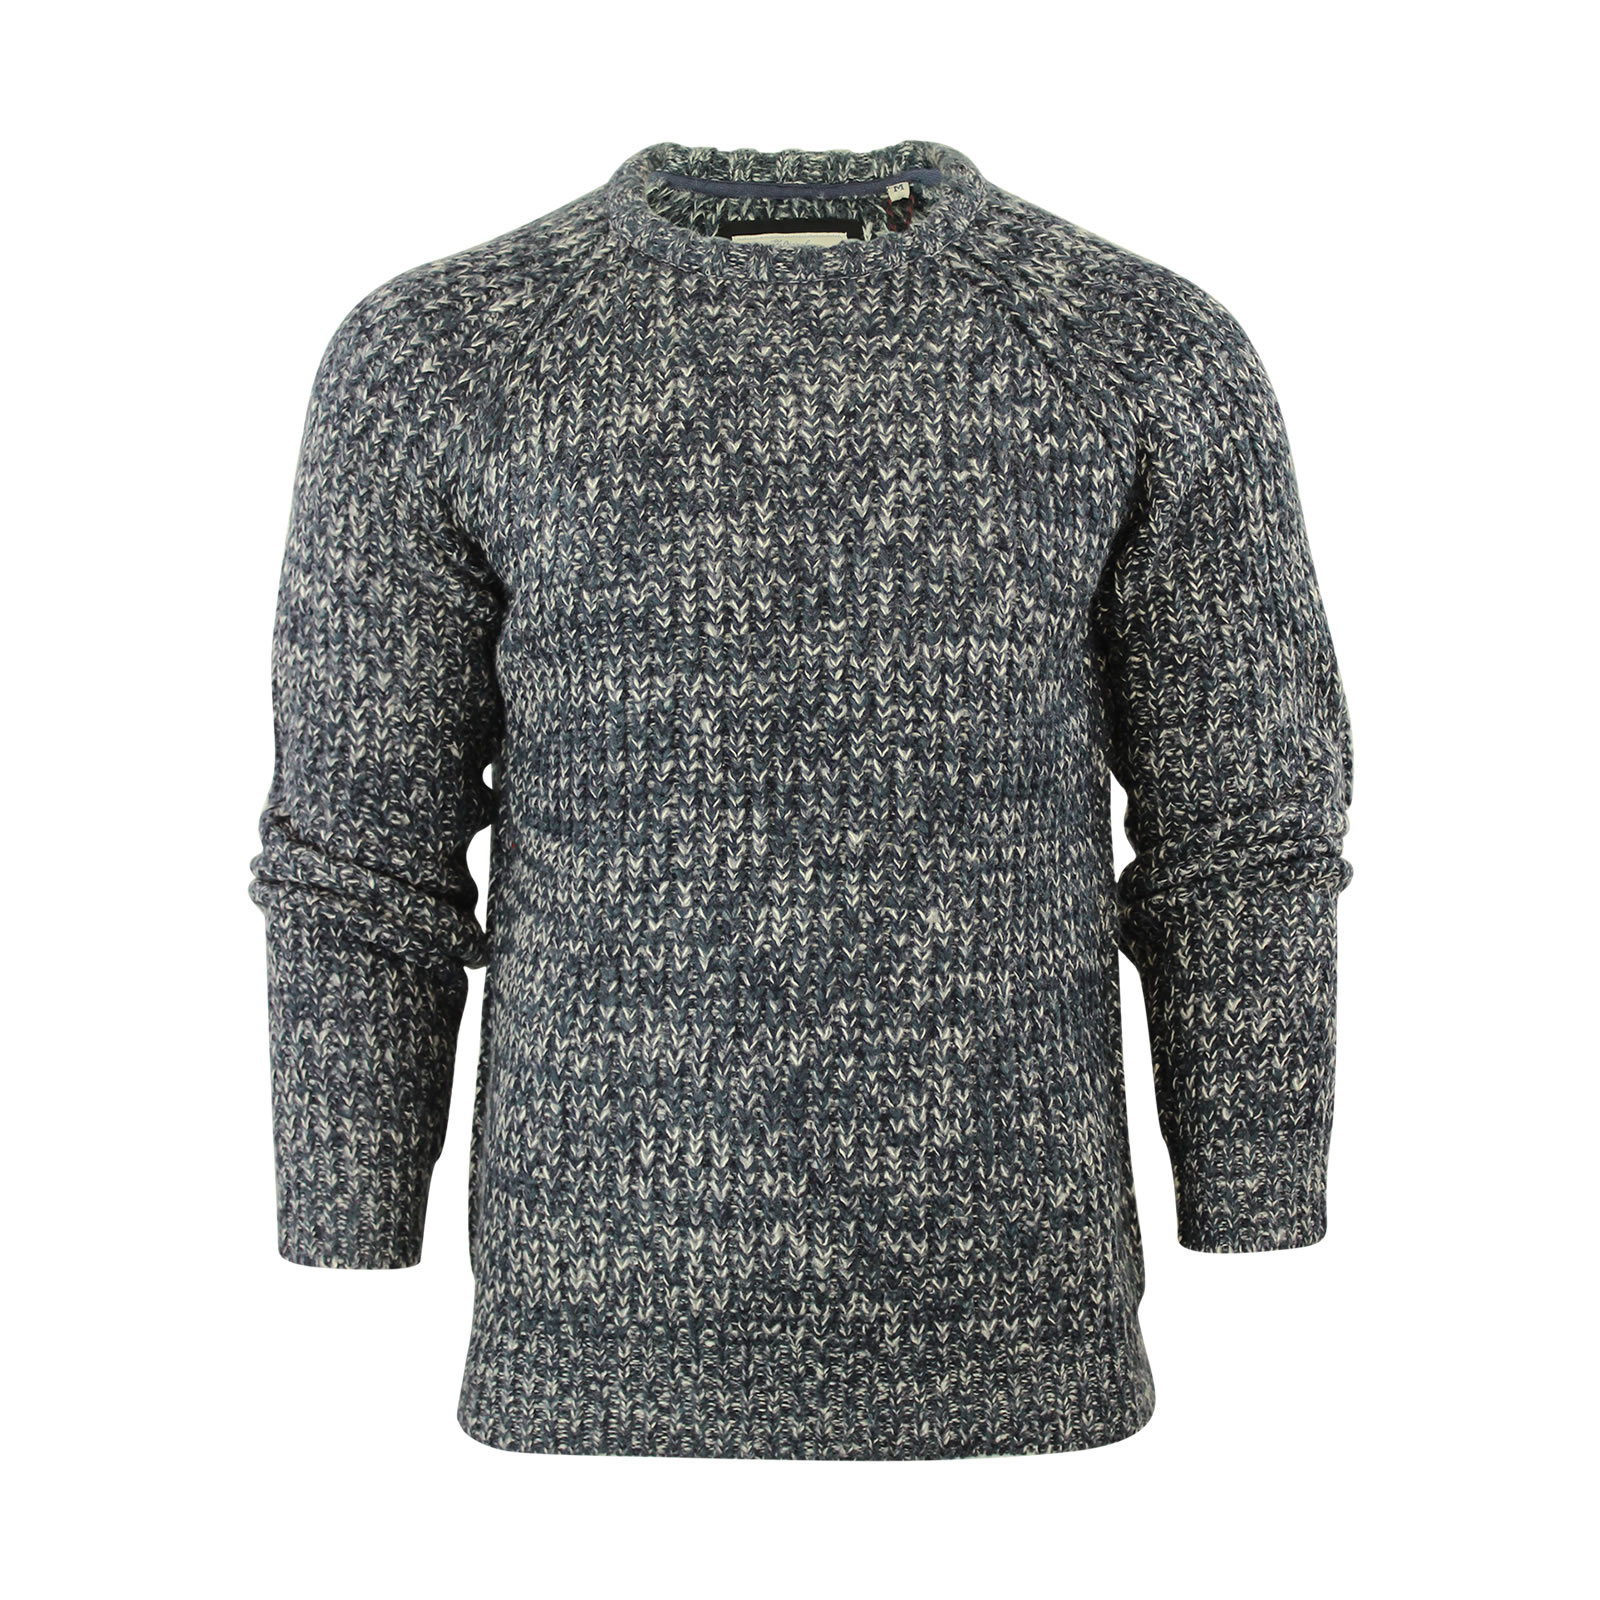 Designed to be both comfortable and warm, jumpers are a staple feature in any man's wardrobe. Essential for wearing in the transitional seasons and relied upon as an extra layer, men's knitwear can be as stylish as it is functional.